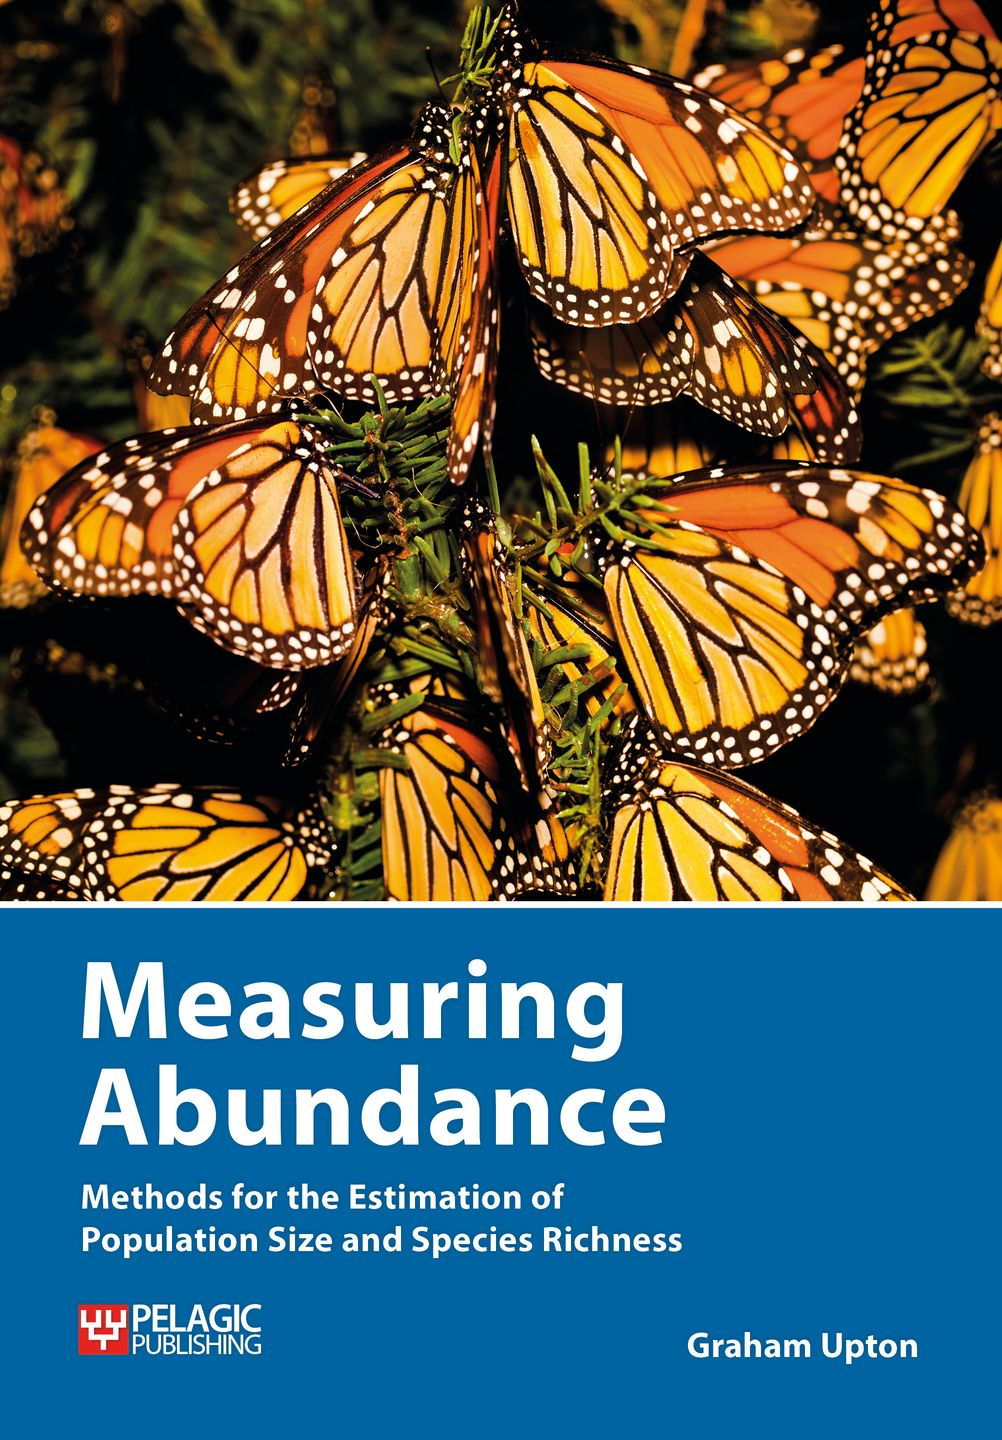 Measuring Abundance - Pelagic Publishing